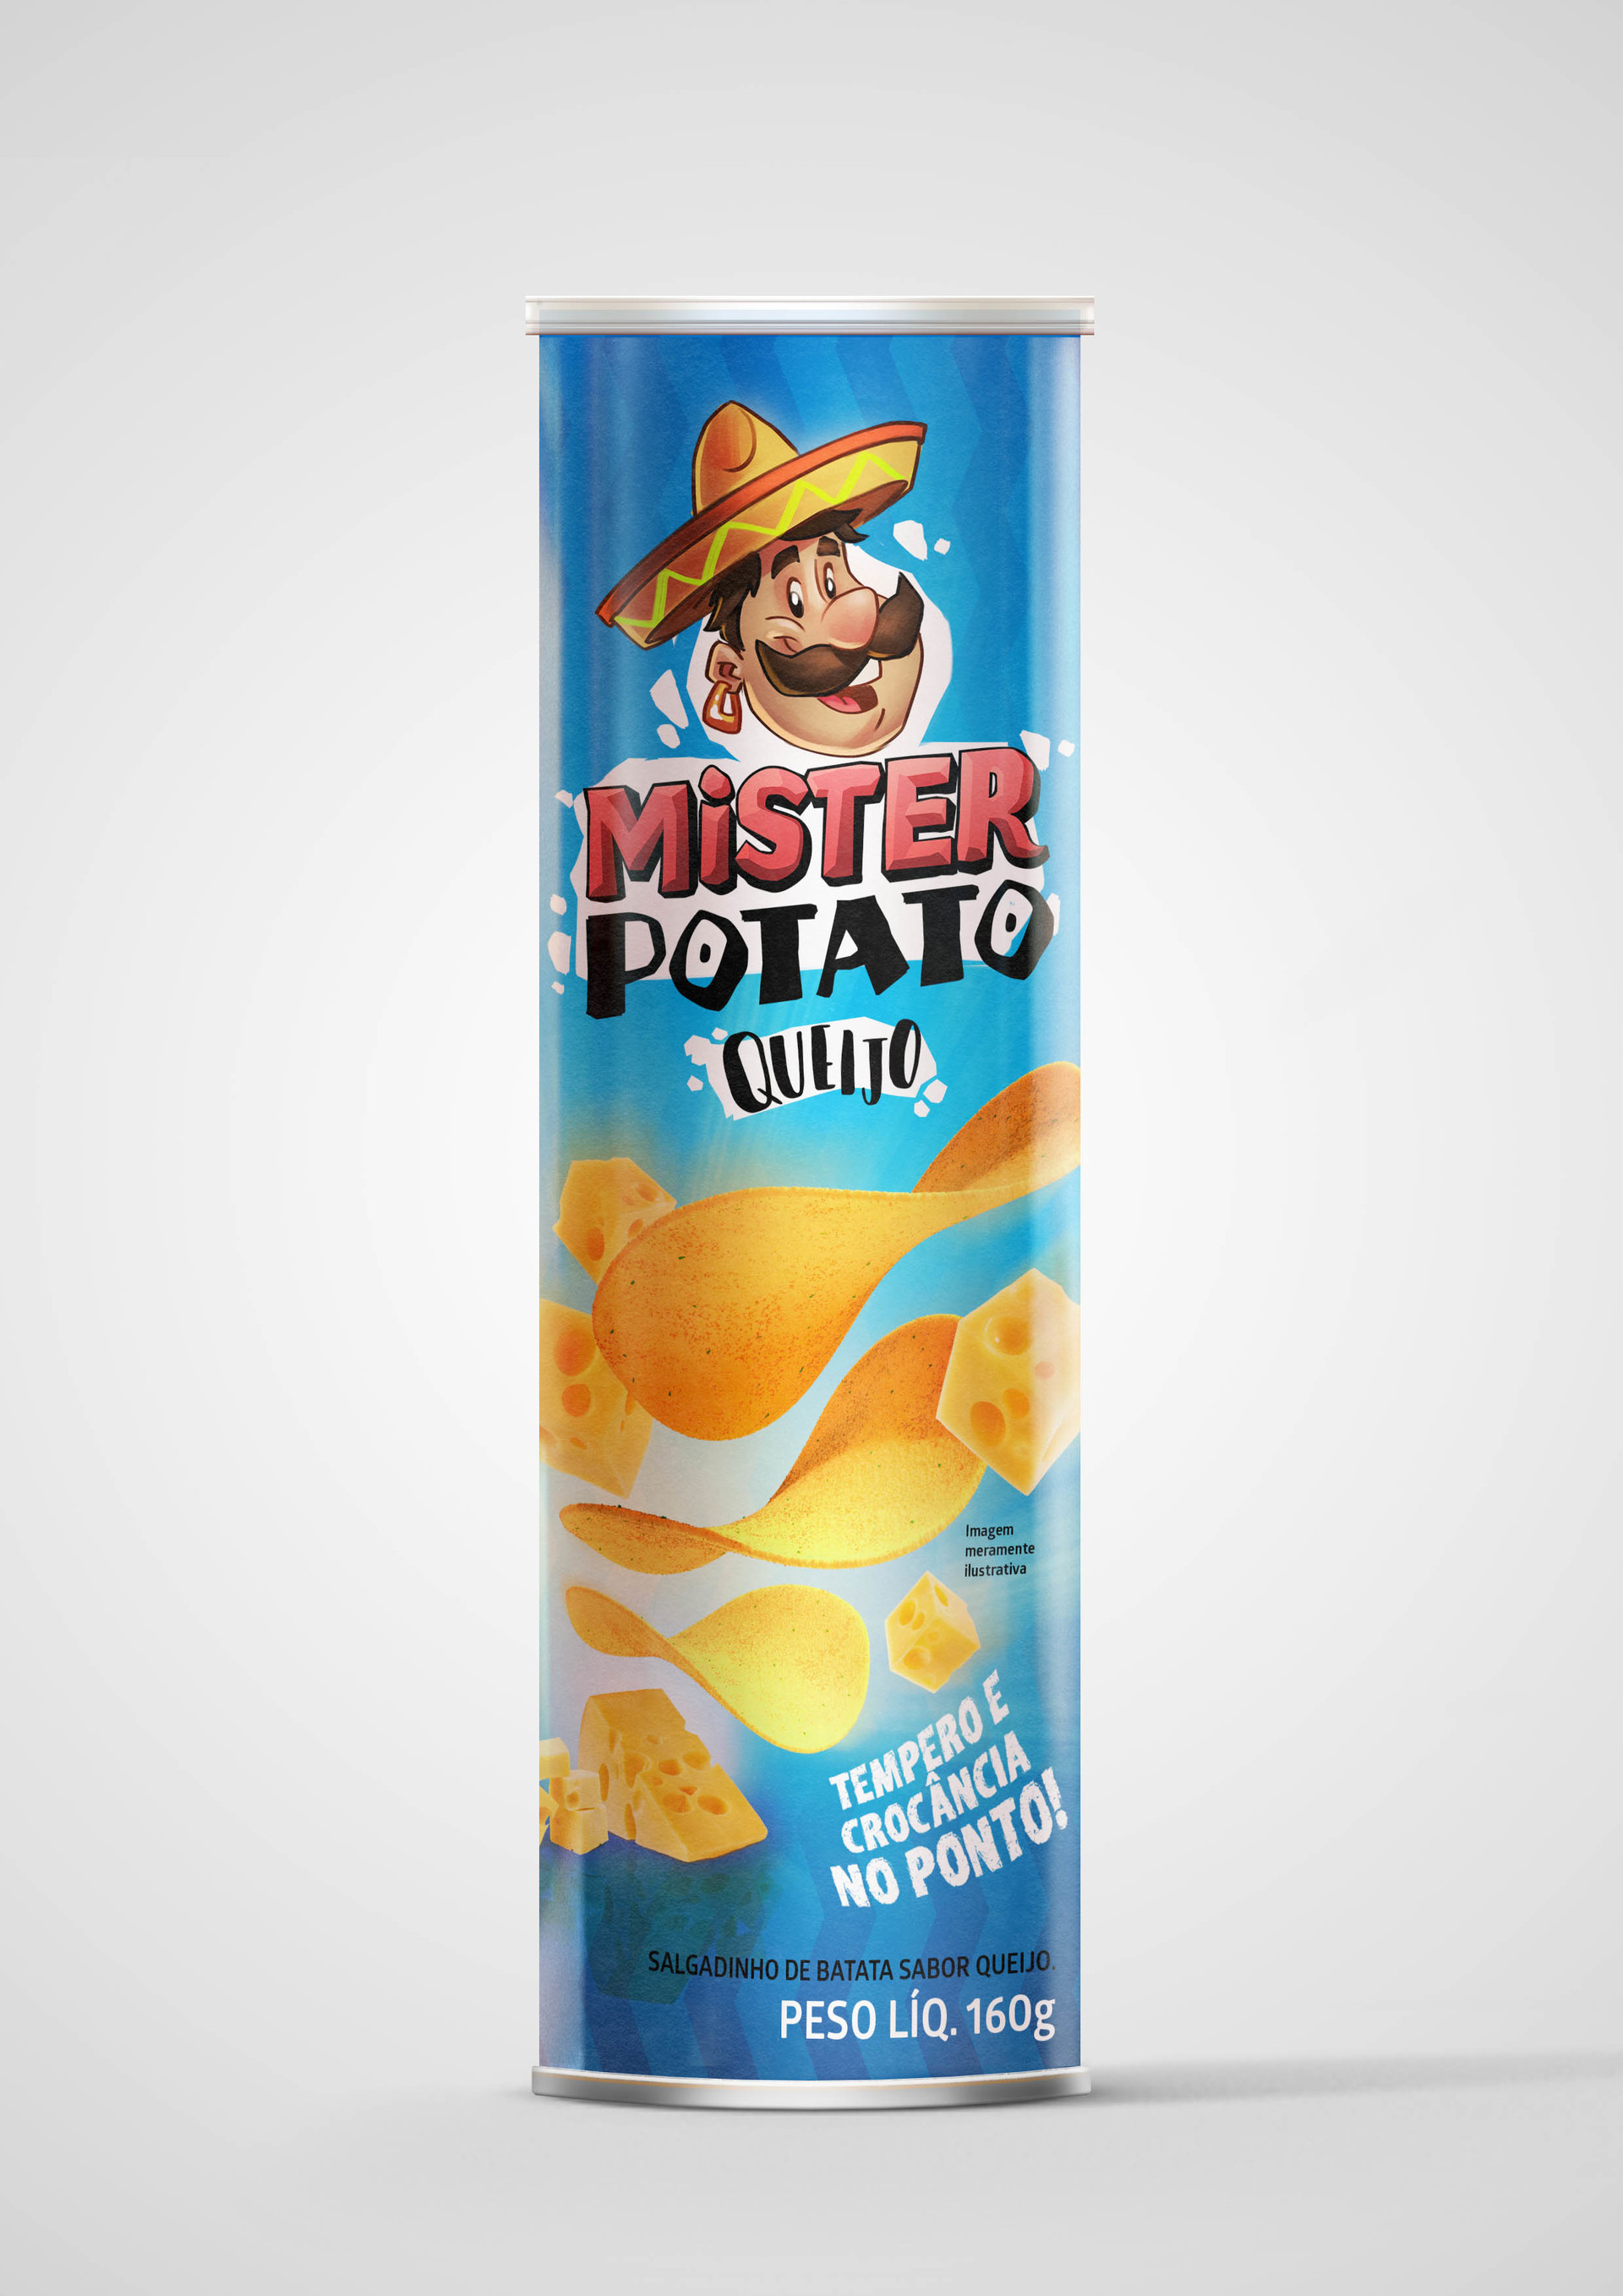 Guilherme freitas potato test mockup3b